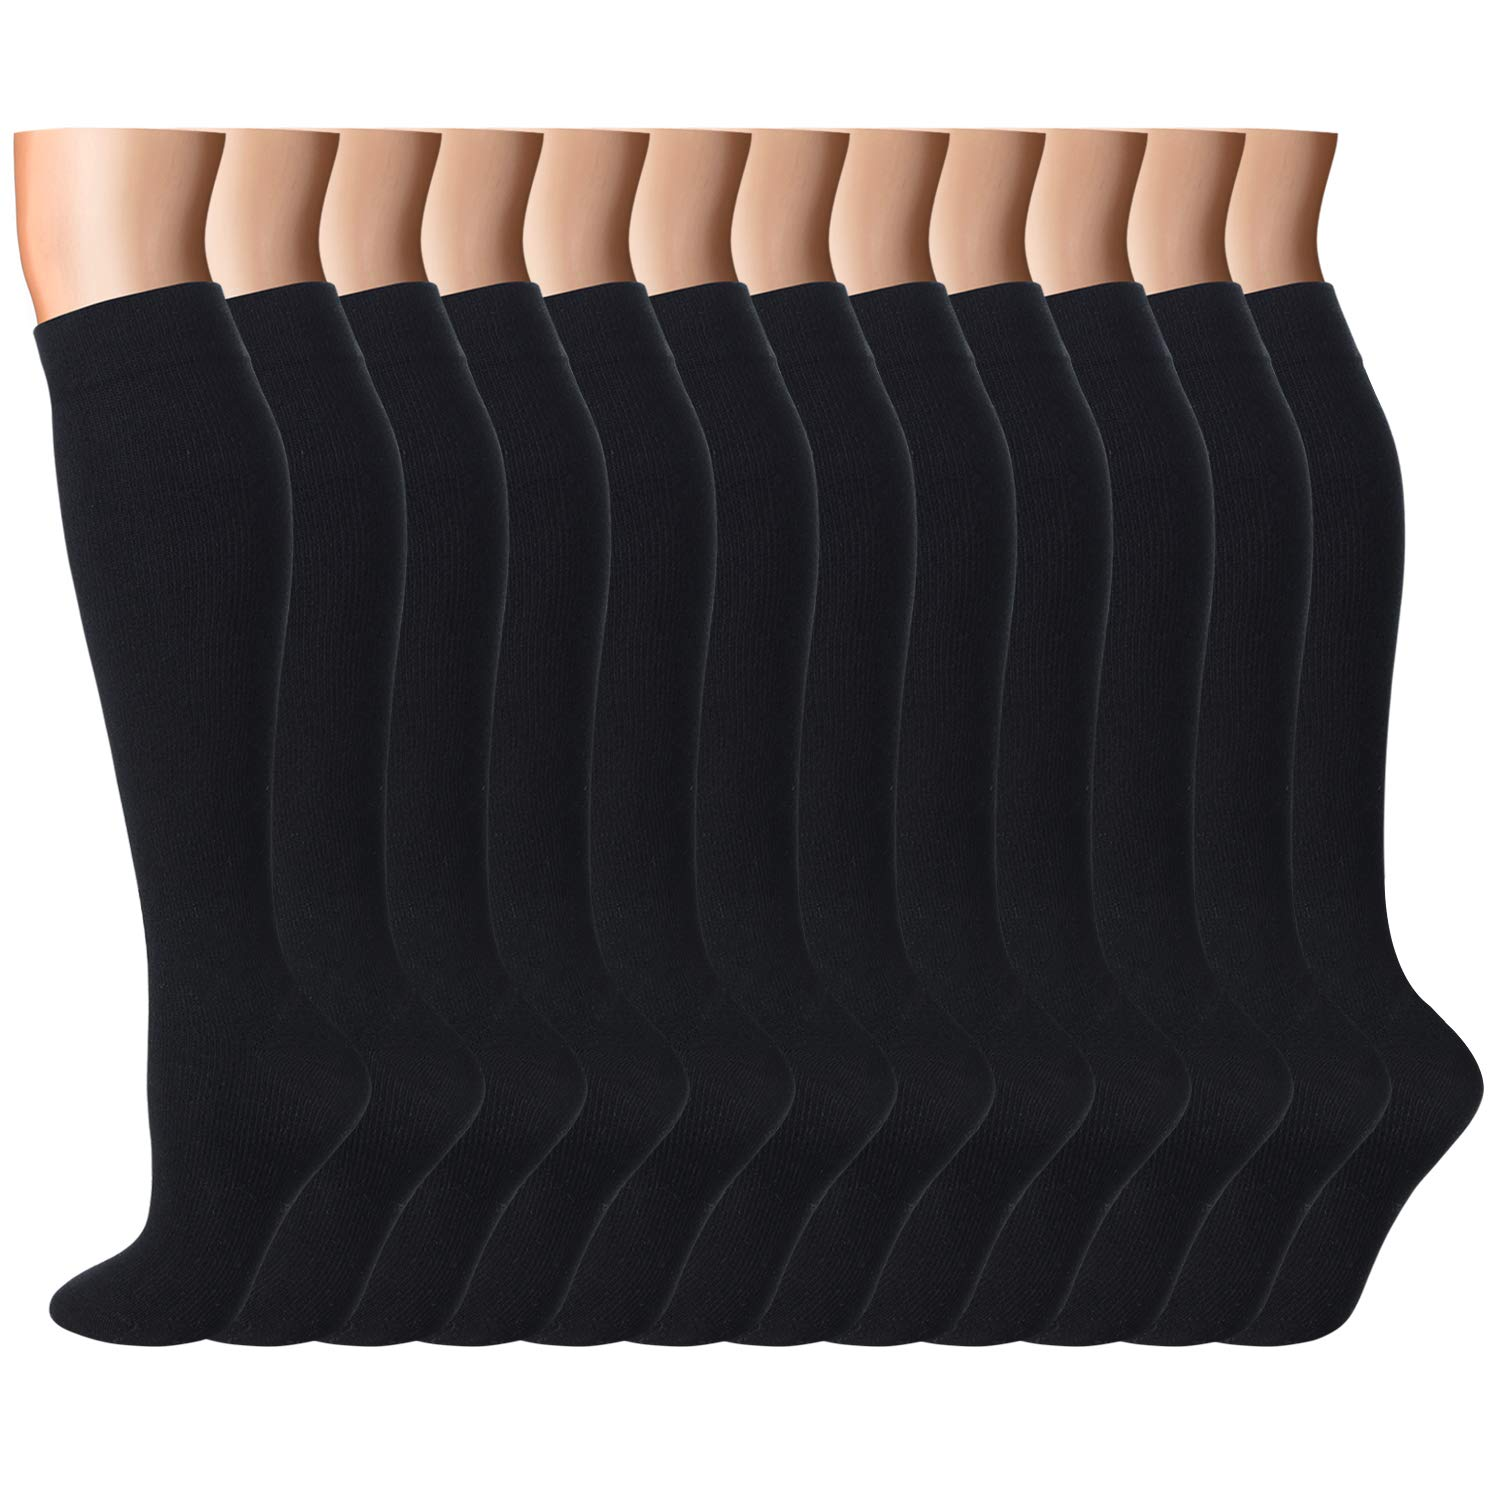 Compression Socks Women Men 15-20 mmHg, 6/7/12-Pairs Mens Womens Athletic Sock for Dress,Running,Medical,Varicose Veins,Travel (Black-12 Pairs, S/M (US Women 5.5-8.5/US Men 5-9))